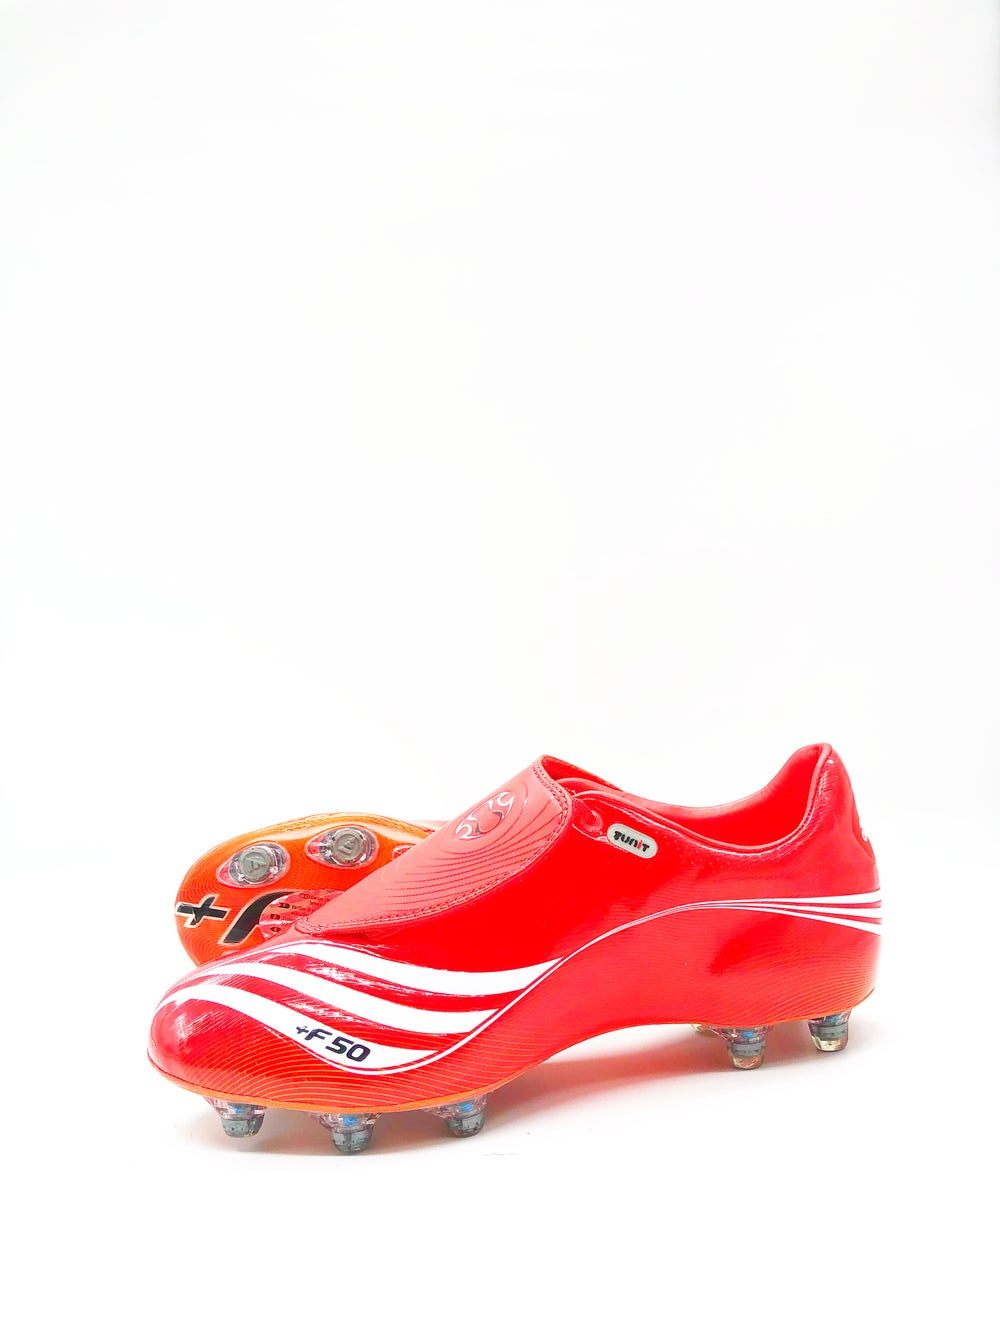 Image of Adidas F50.7 Tunit Red